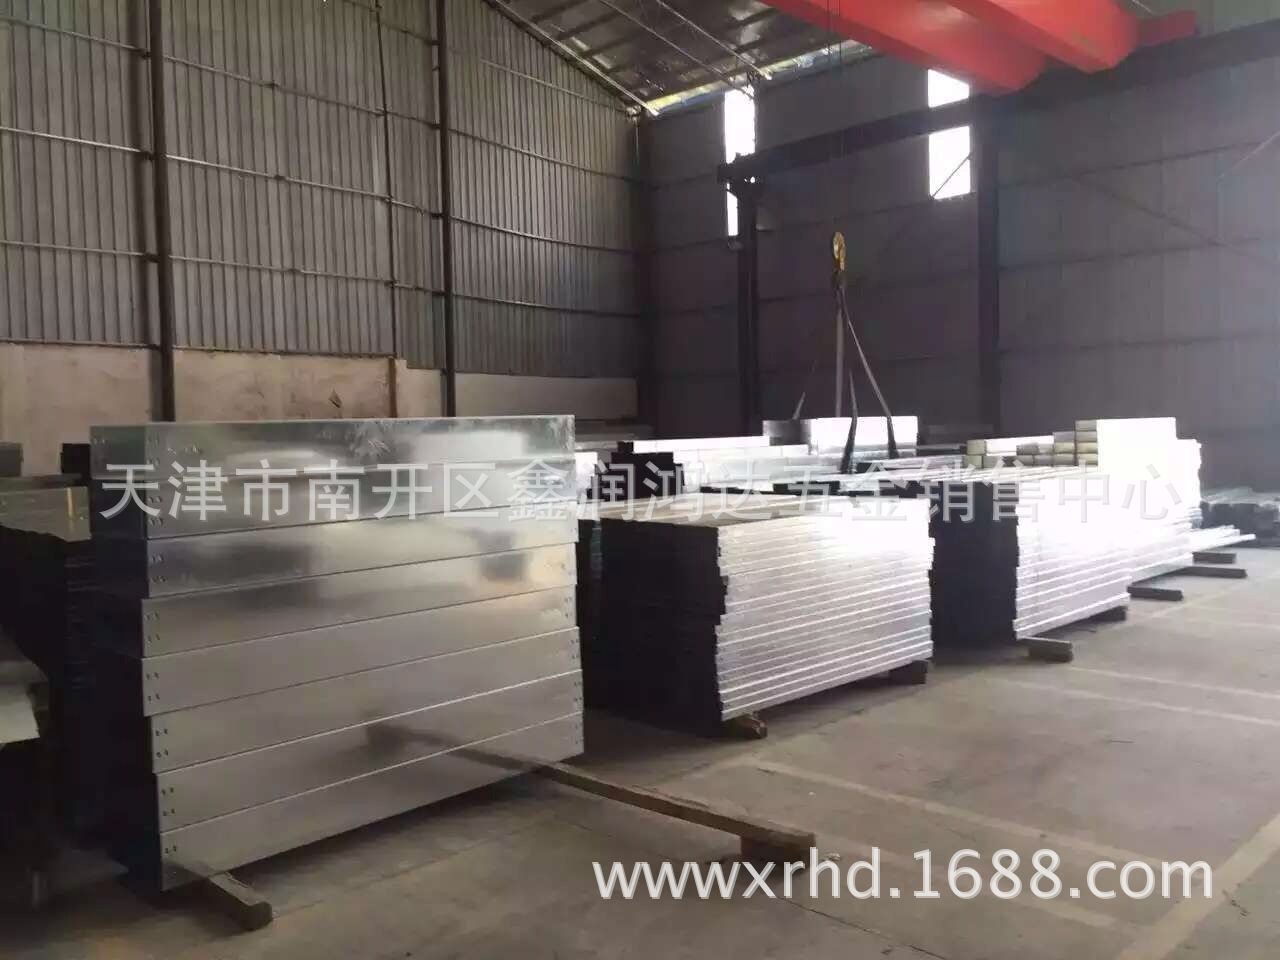 Xà gồ  300 * 100 stainless steel trough cable tray tray tray accessory equipment galvanized fire bri